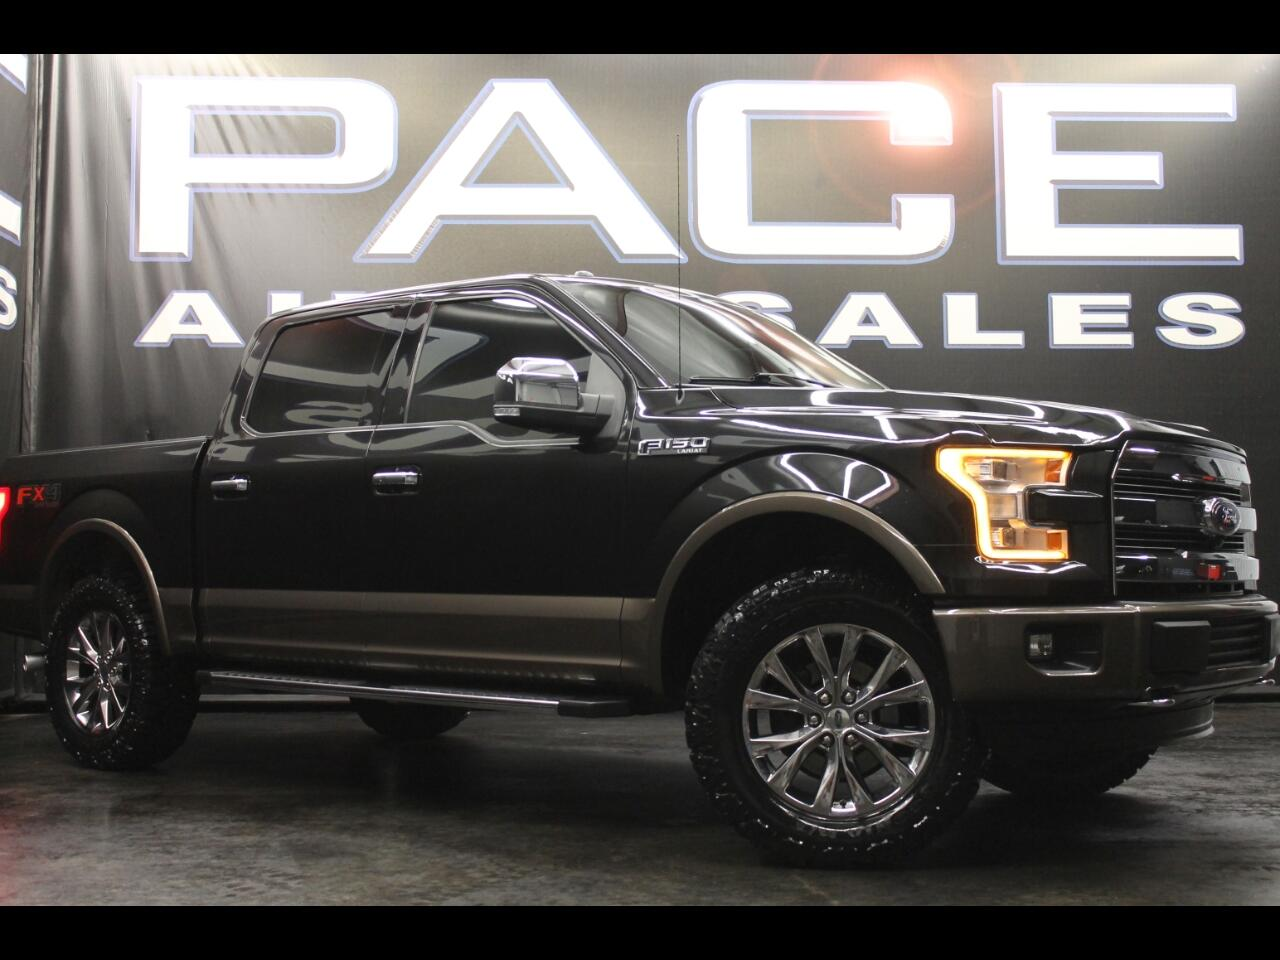 2015 Ford F-150 4WD SuperCrew Lariat FX4 Leveled